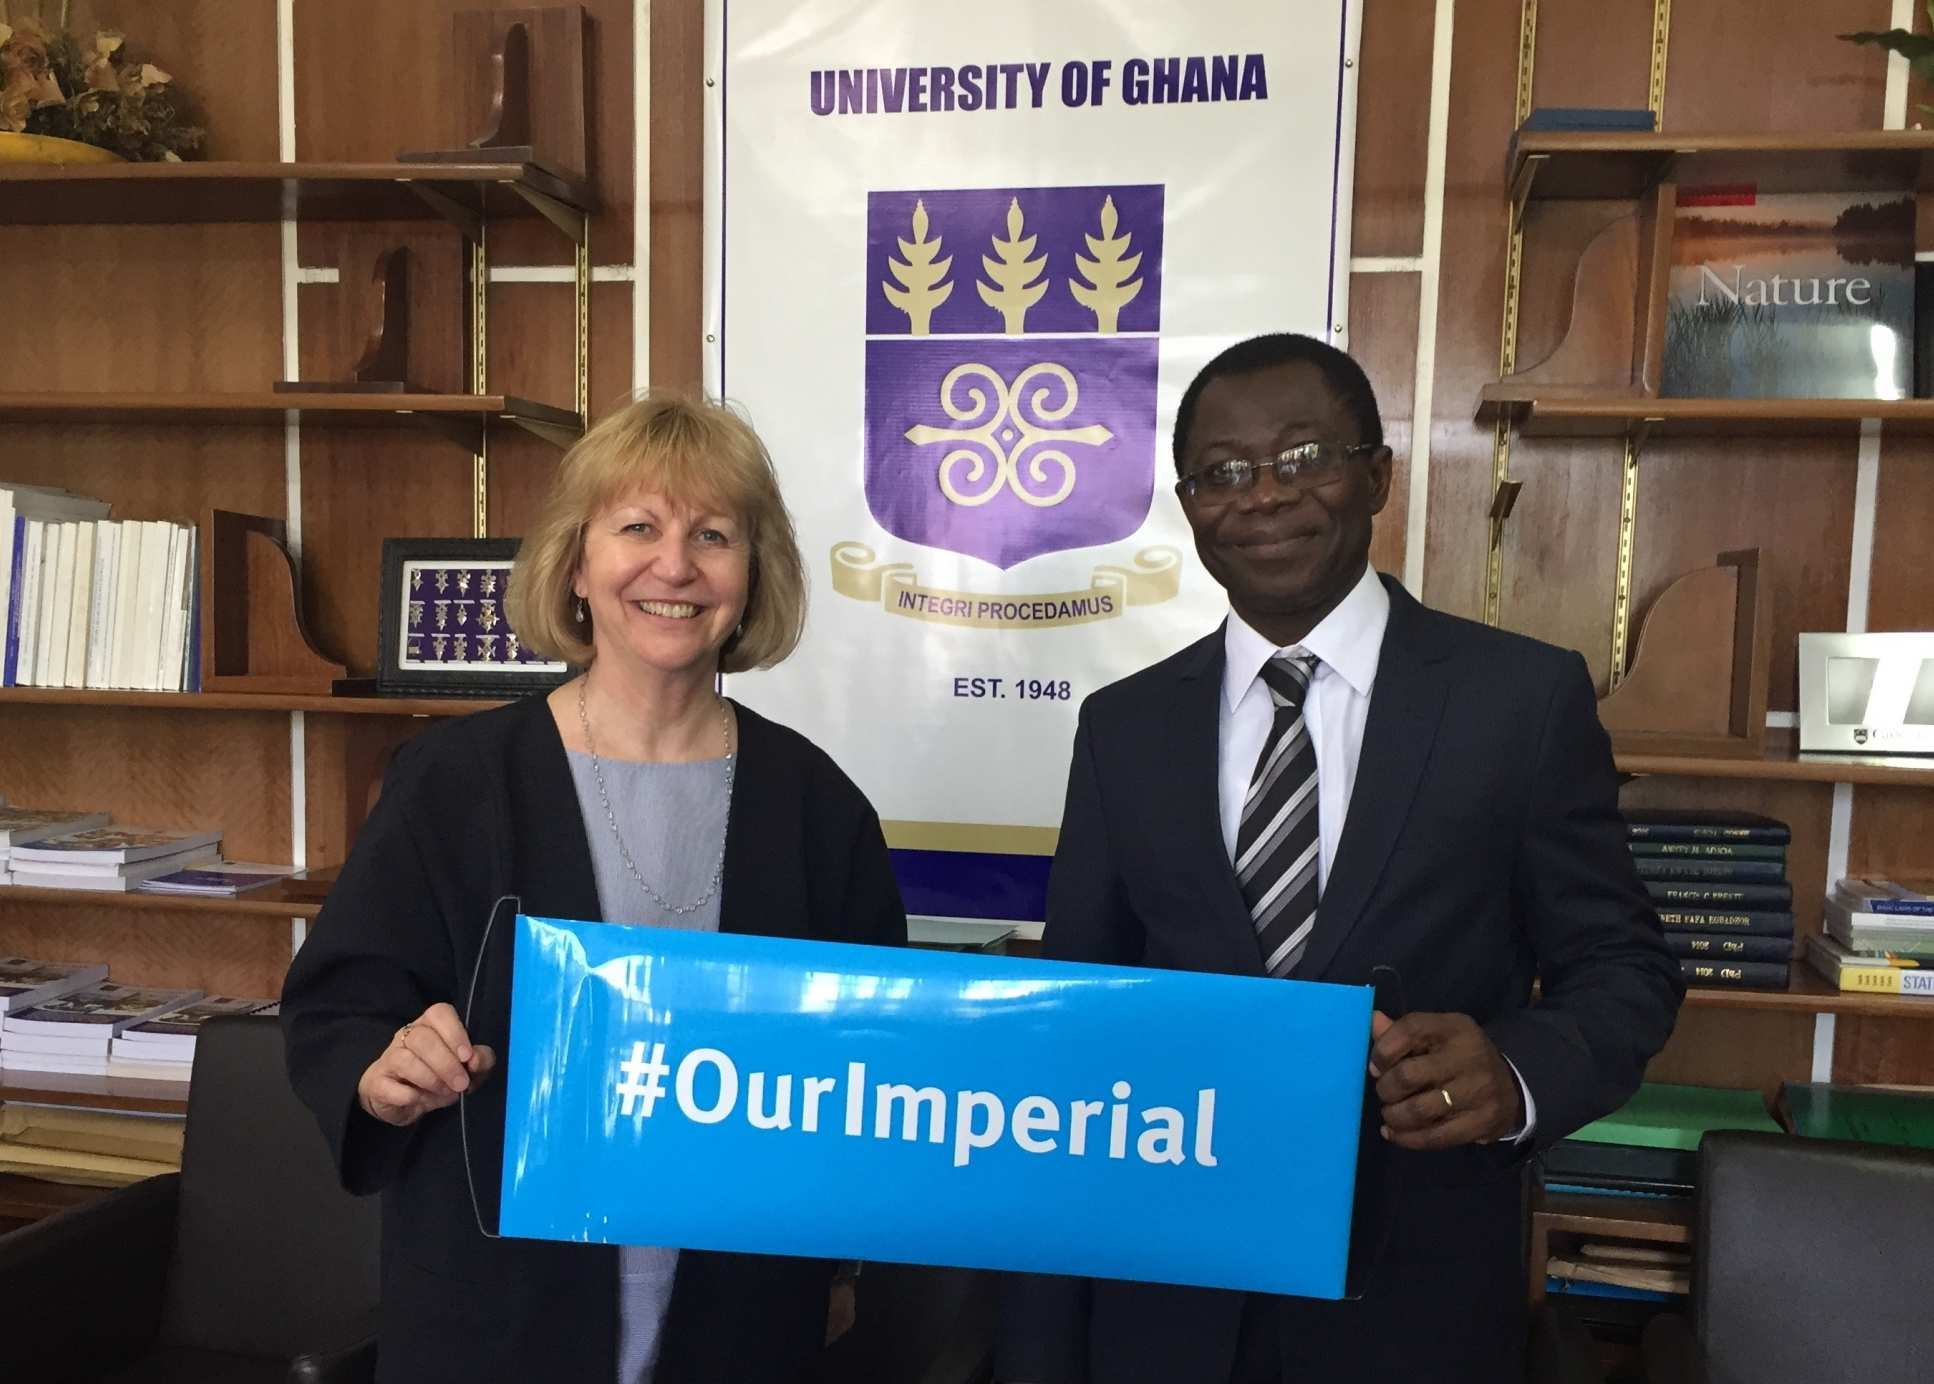 Professor Dallman met with Professor Samuel Kwame Offei, Pro-Vice Chancellor of academic partnerships at the University of Ghana and an Imperial alumnus.